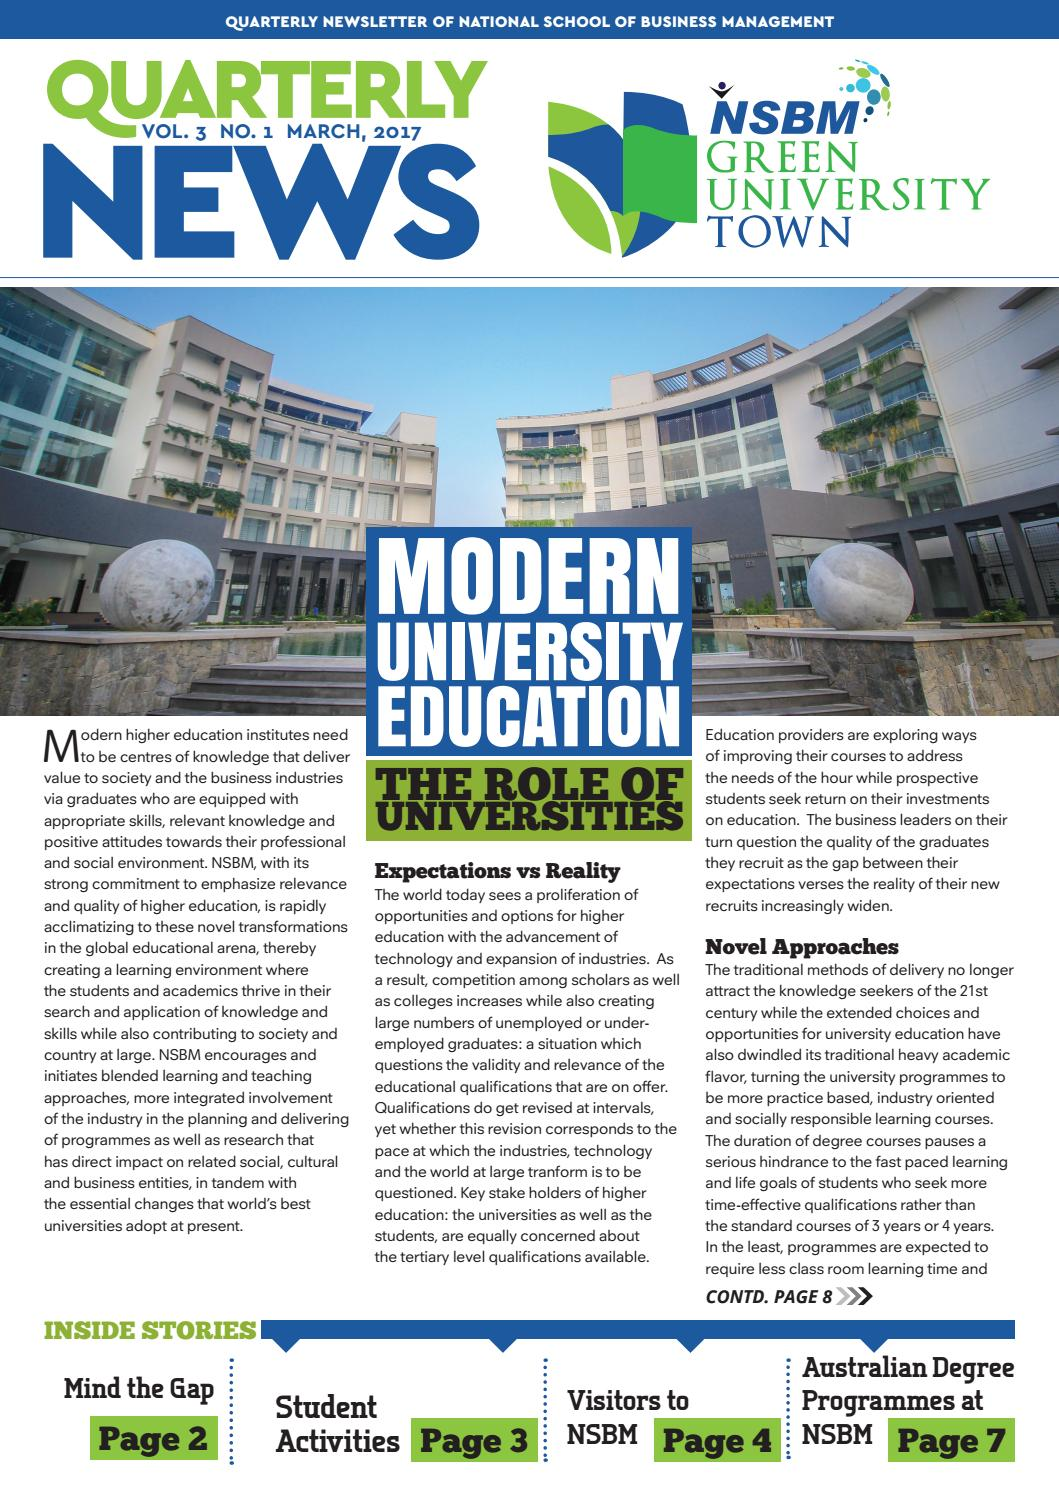 Nsbm Newsletter Vol 3 No 1 2017 By Design Factory Issuu